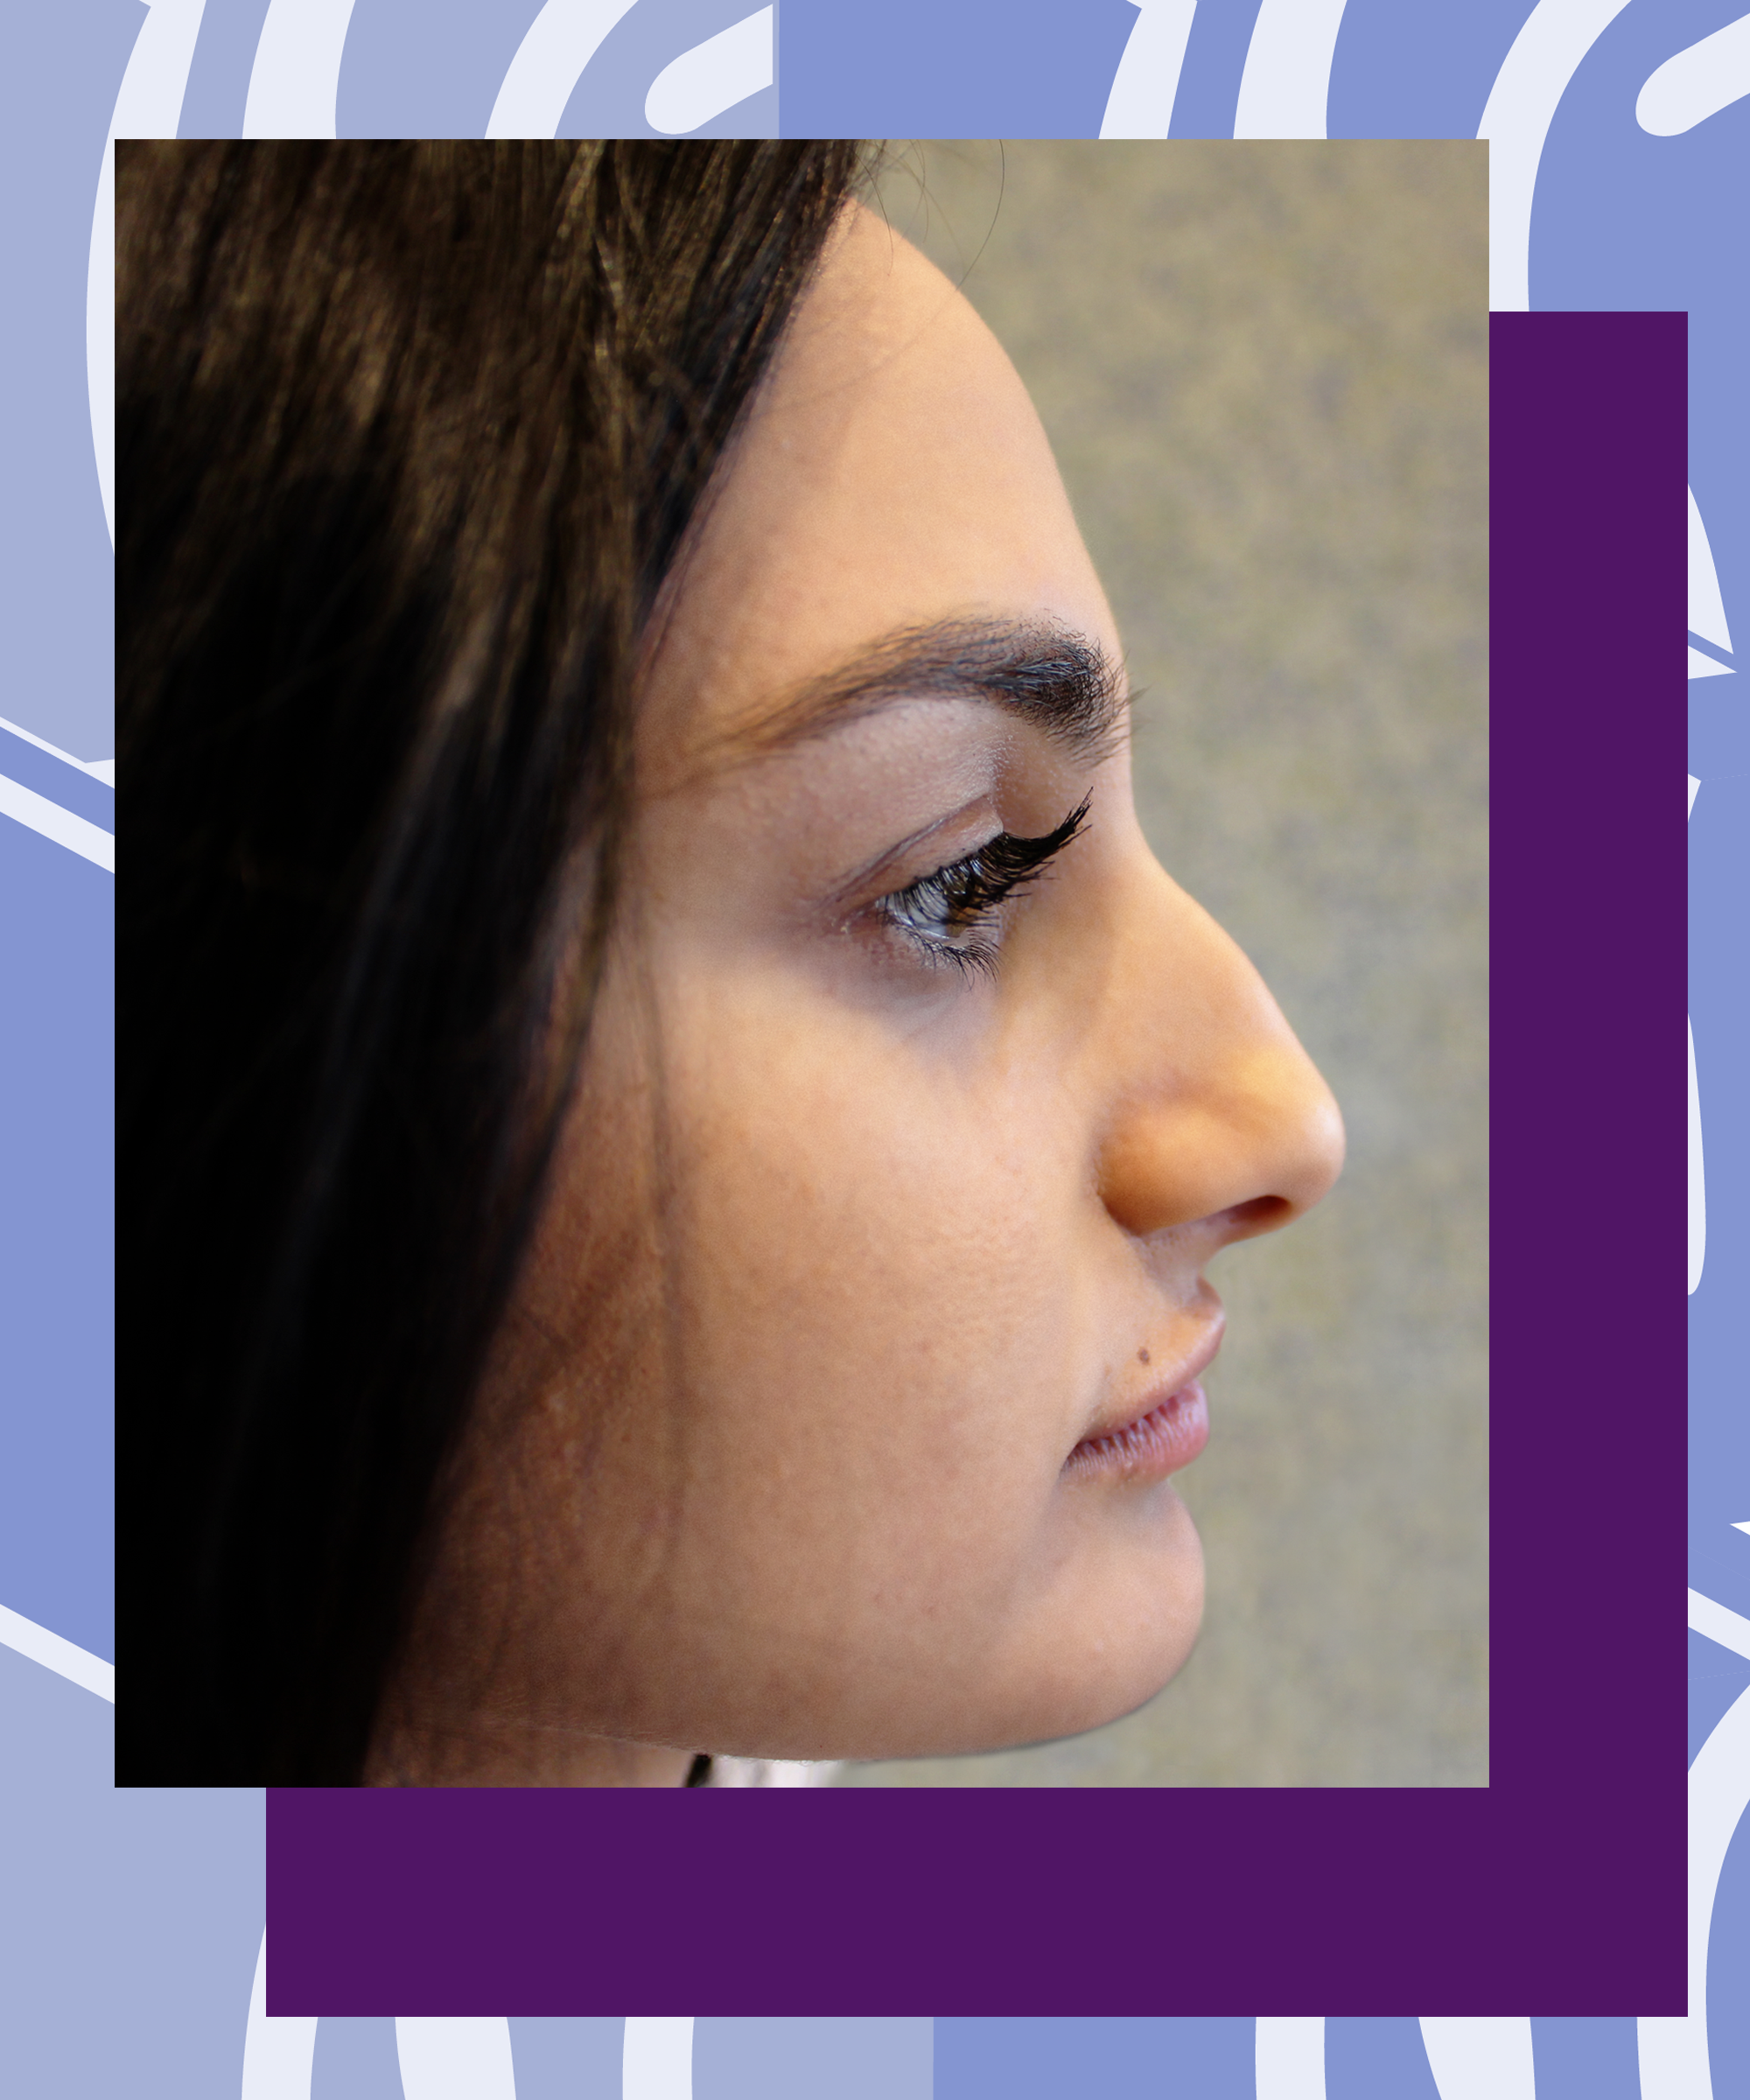 Face Fillers Temporary Nose Job Before After Photos